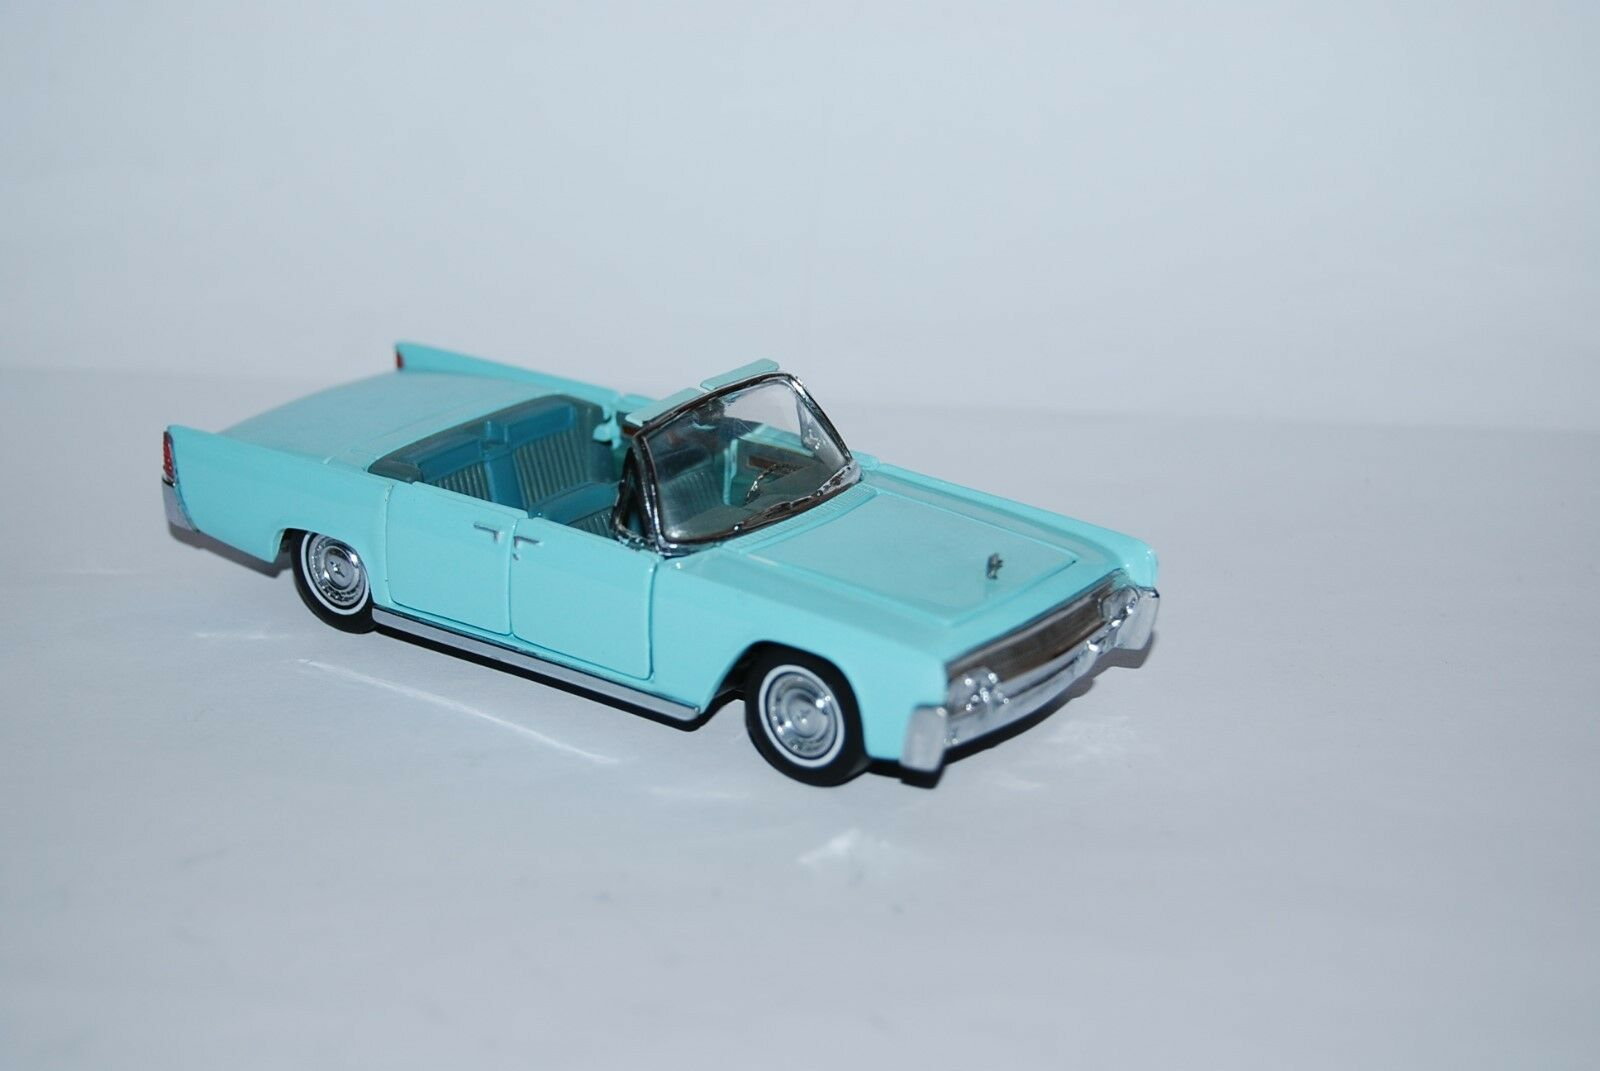 FRANKLIN MINT LINCOLN CONTINENTAL COVERTIBLE 1961 SCALE 1 43